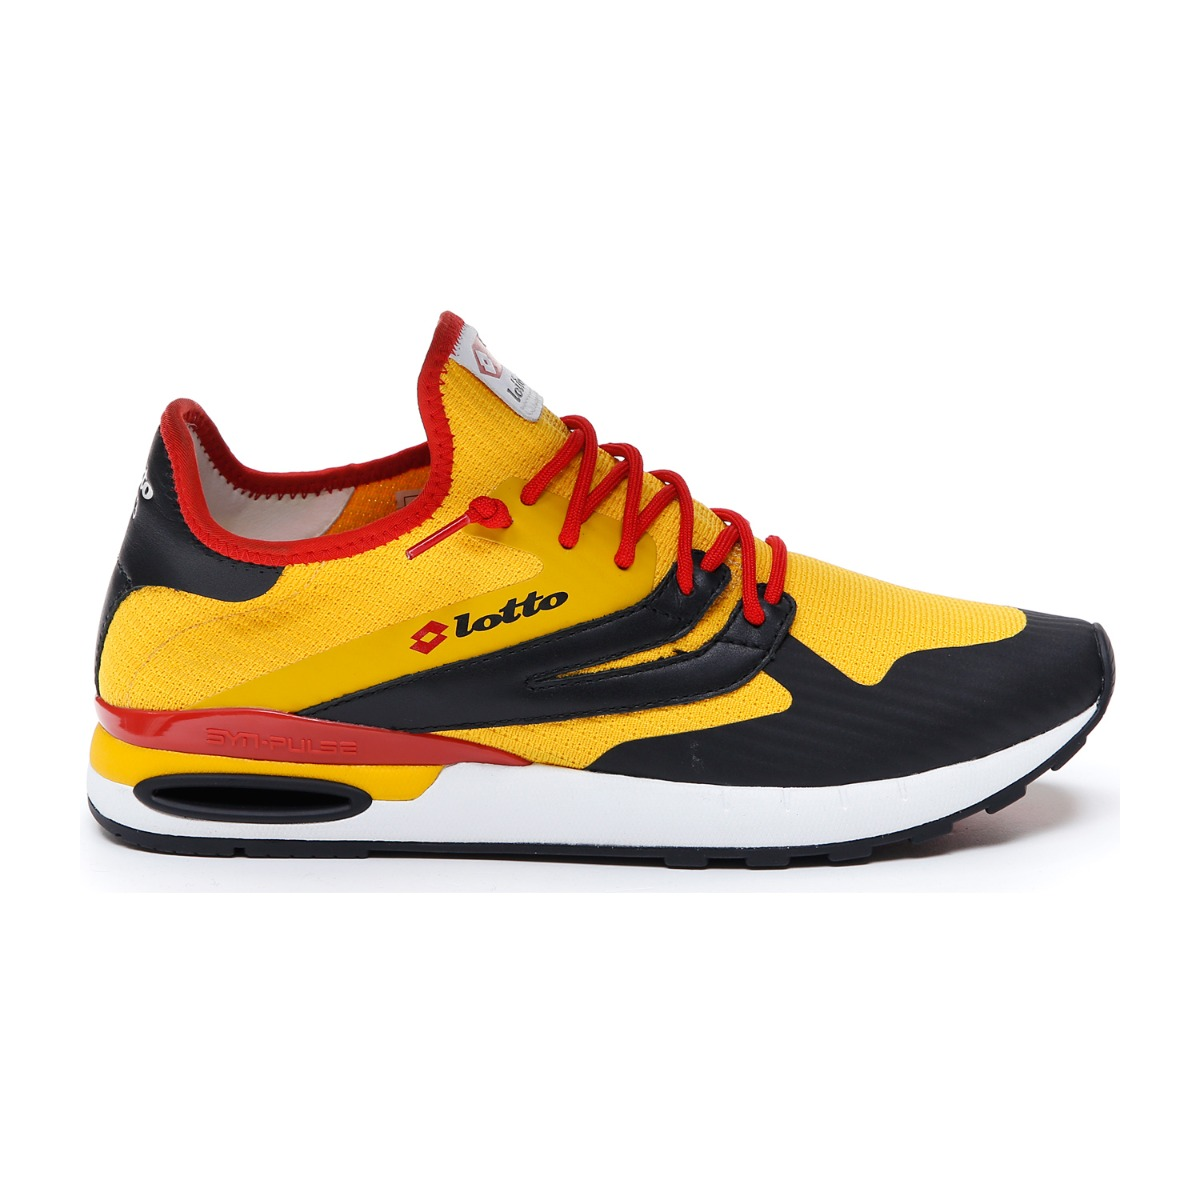 online store dfe46 79767 Lotto Sport Italia - Footwear, clothing and accessories for sport ...